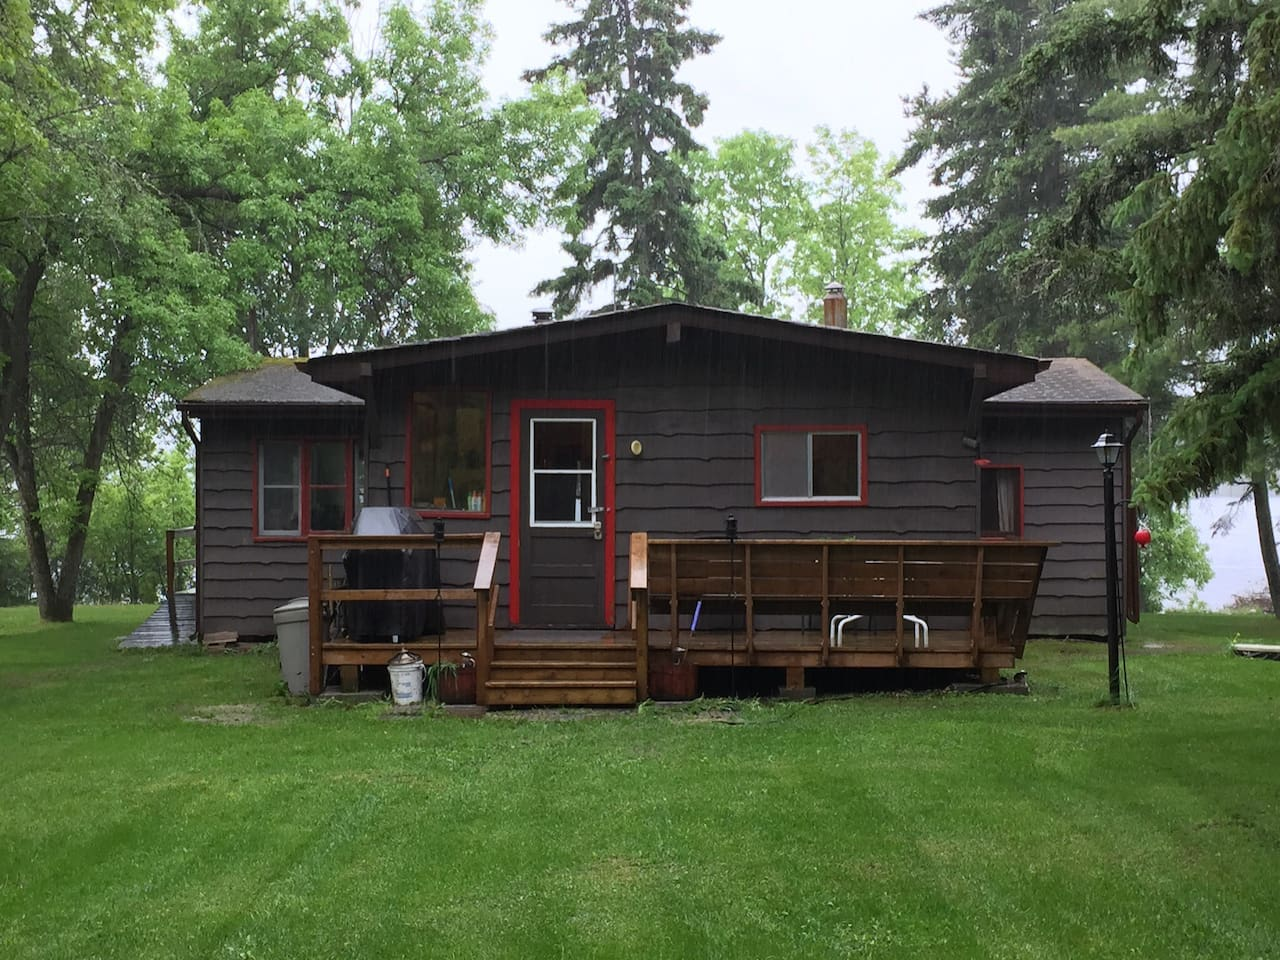 Cottage from the backyard with deck and BBQ. Great for morning coffee and bird watching.